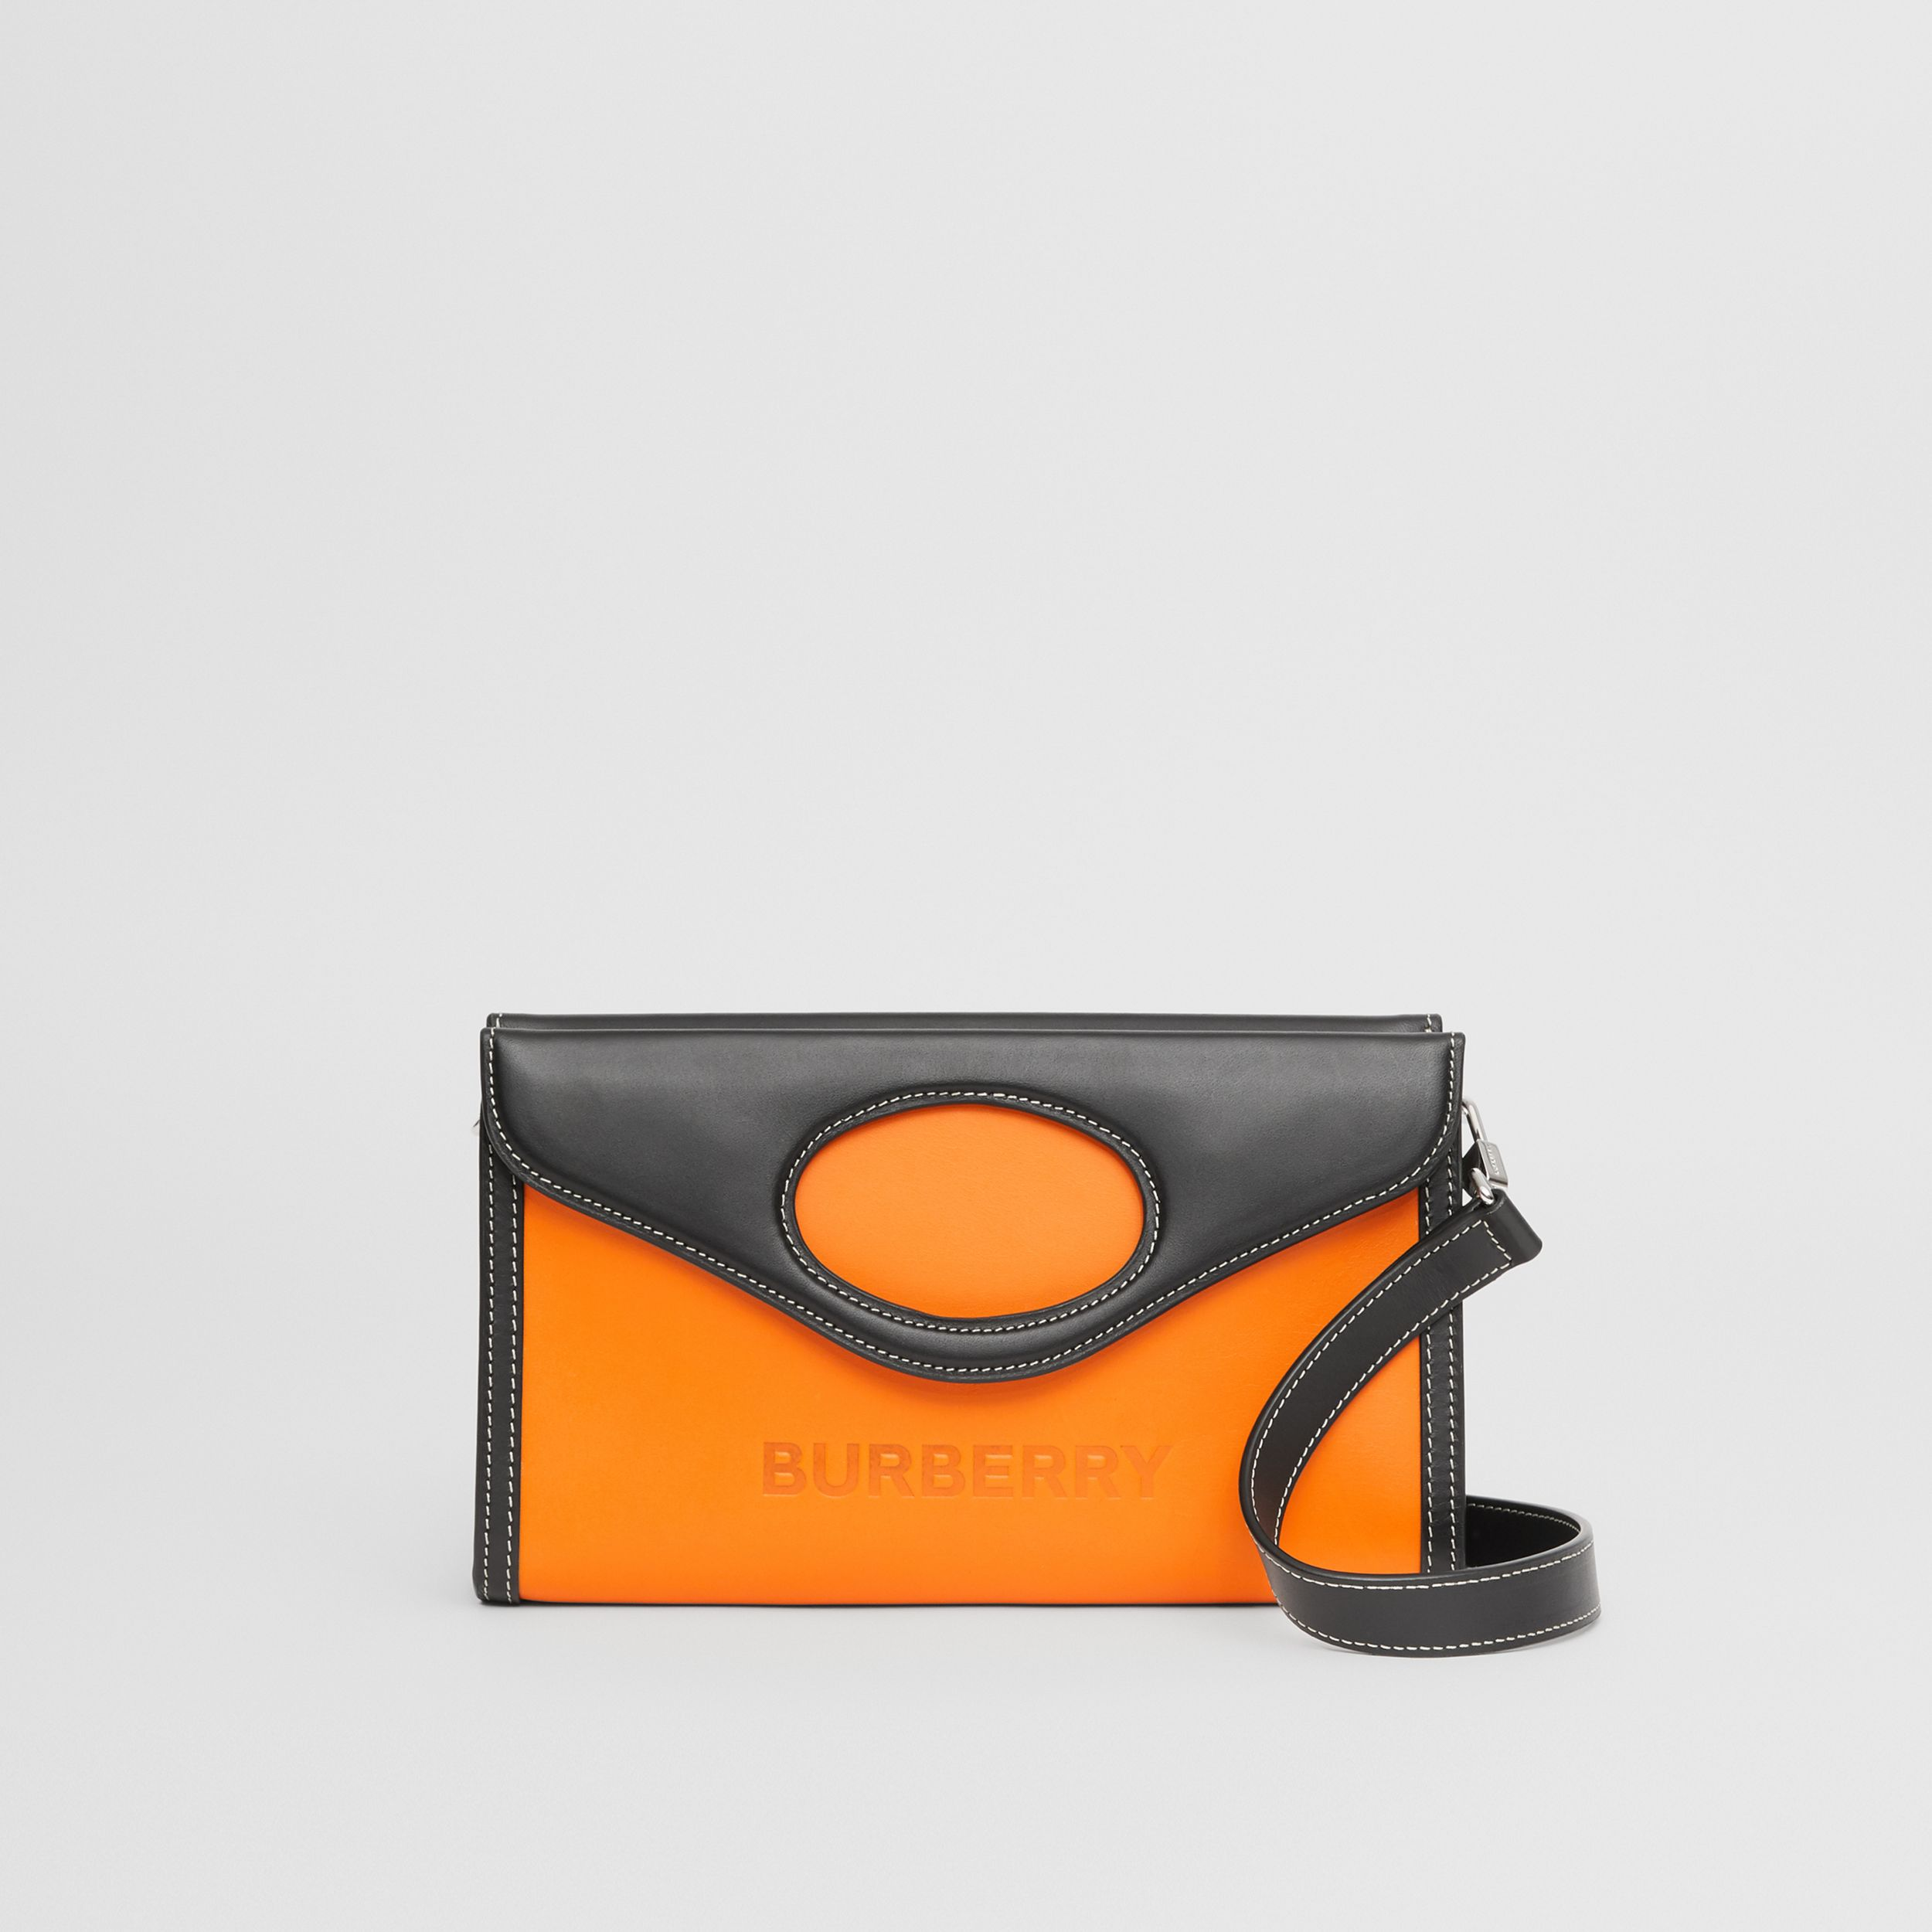 Two-tone Leather Foldover Pocket Bag in Deep Orange/black - Men | Burberry Canada - 1